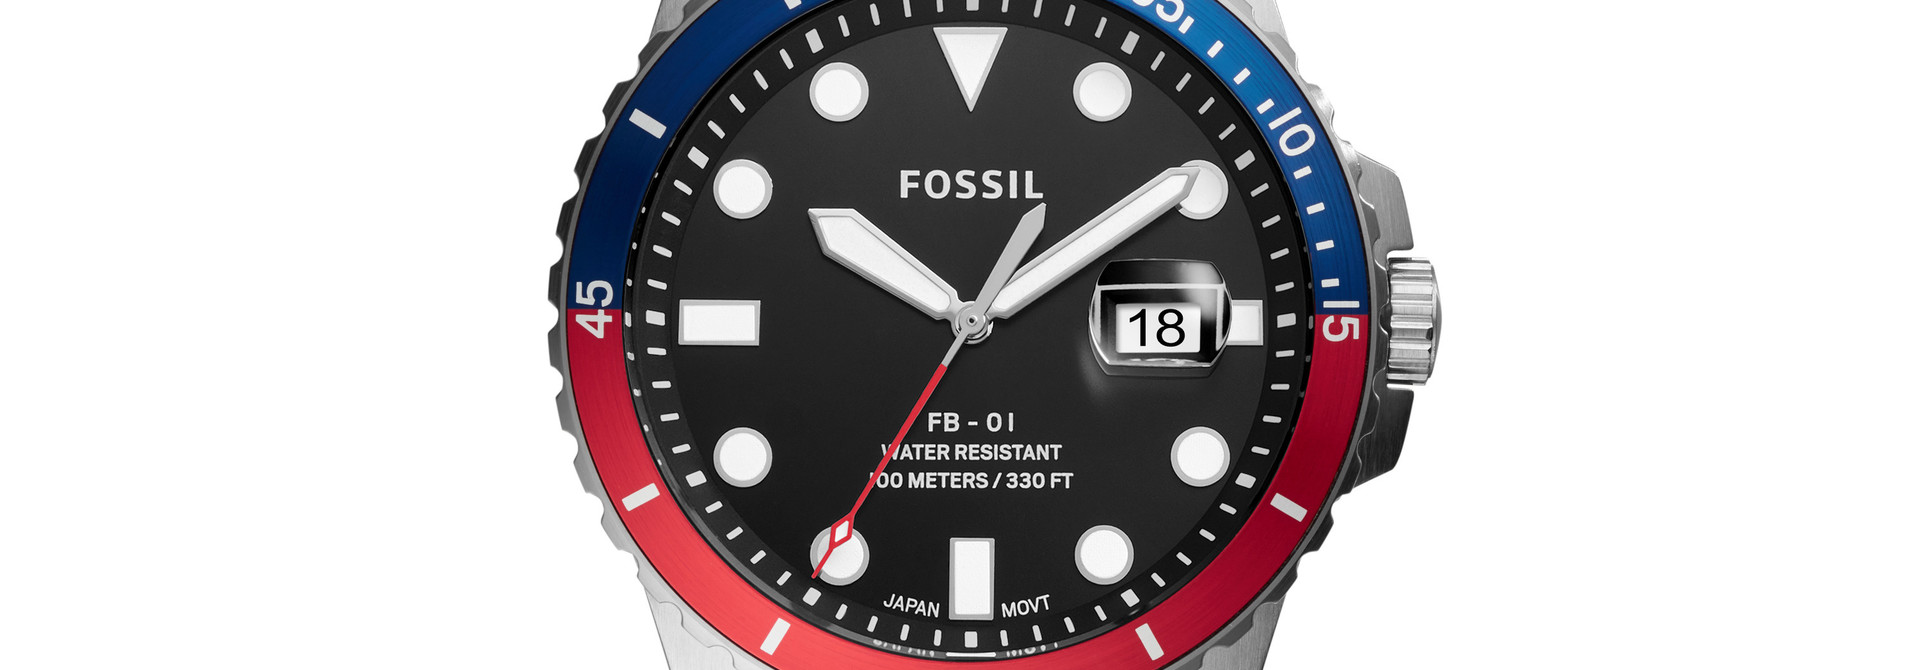 Fossil FB-01 Three-Hand Date Stainless Steel Watch FS5657